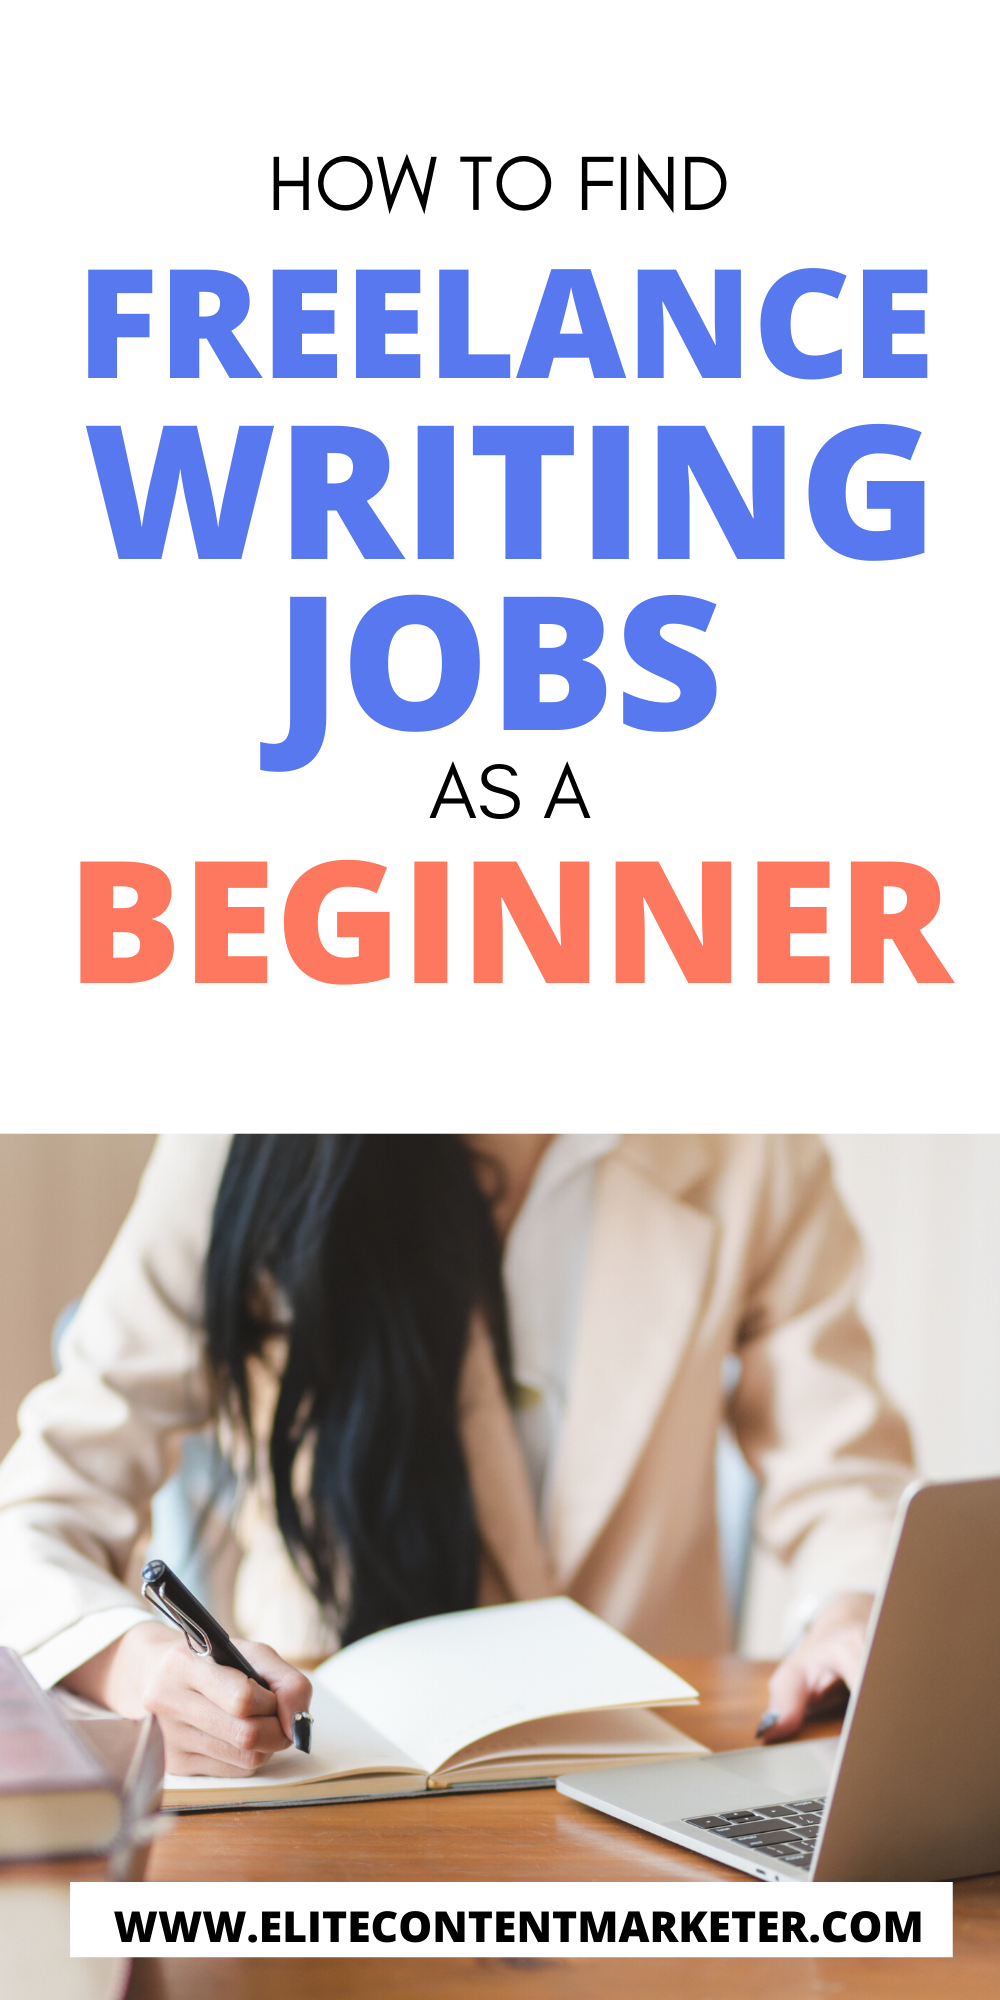 How To Find Freelance Writing Jobs As A Beginner Freelance Writing Jobs In 2020 Freelance Writing Jobs Writing Jobs Freelance Writing